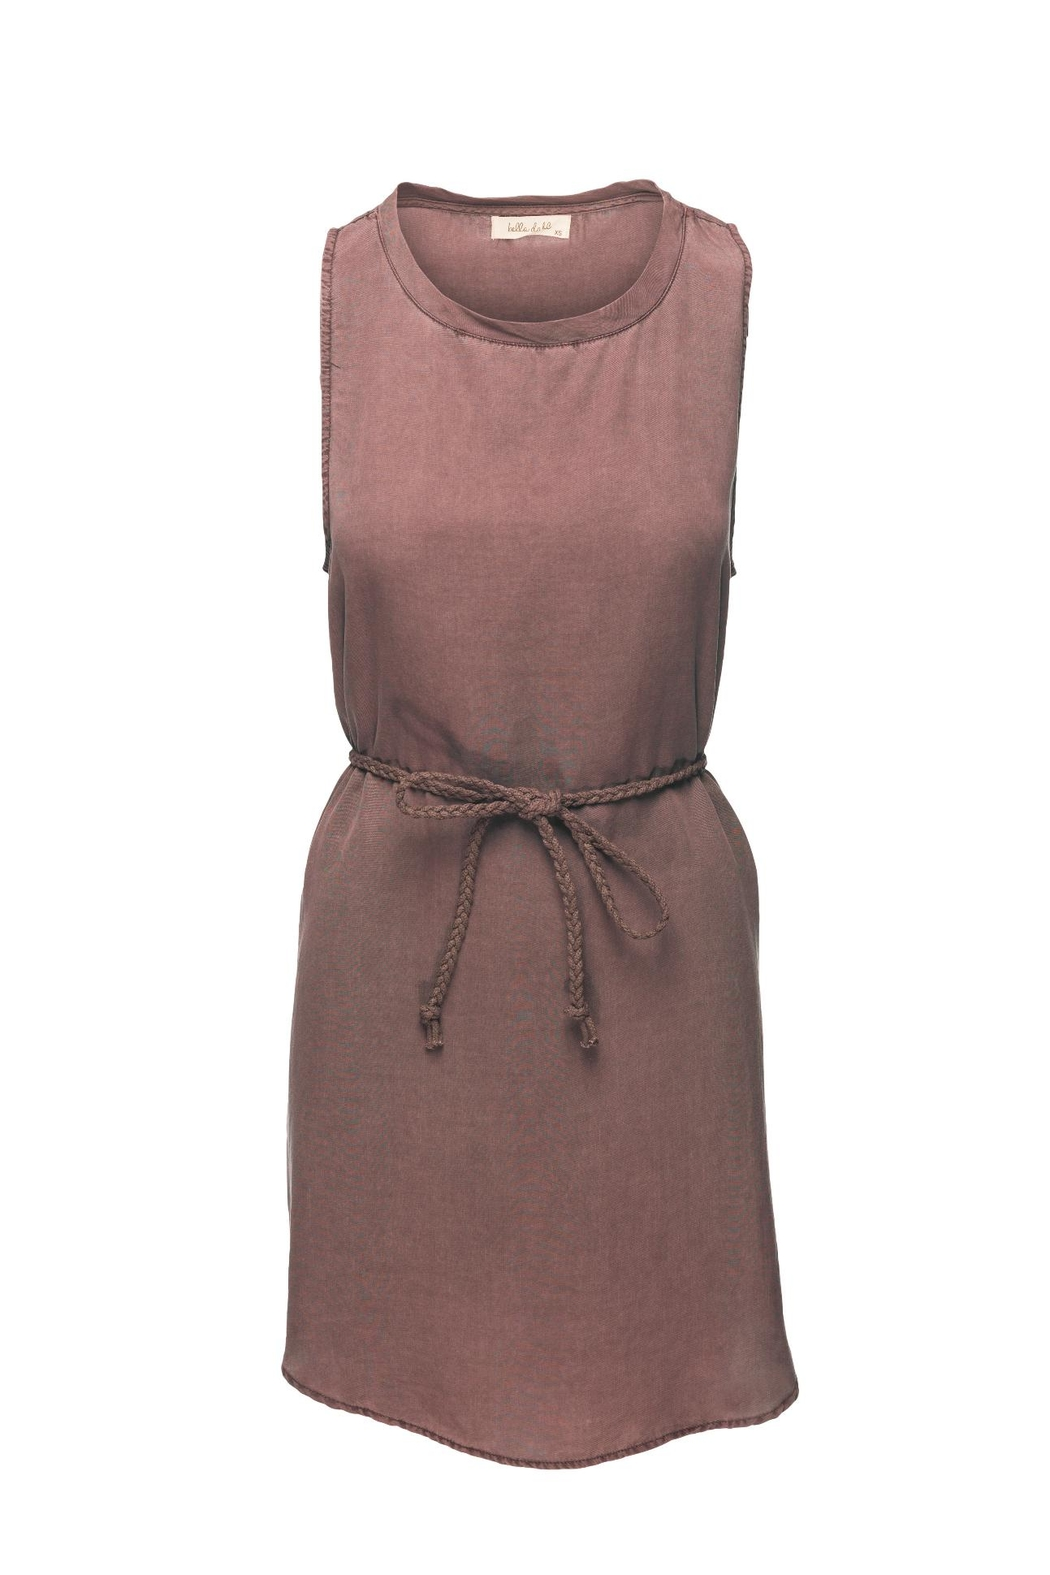 Bella Dahl Tie Tank Dress - Main Image